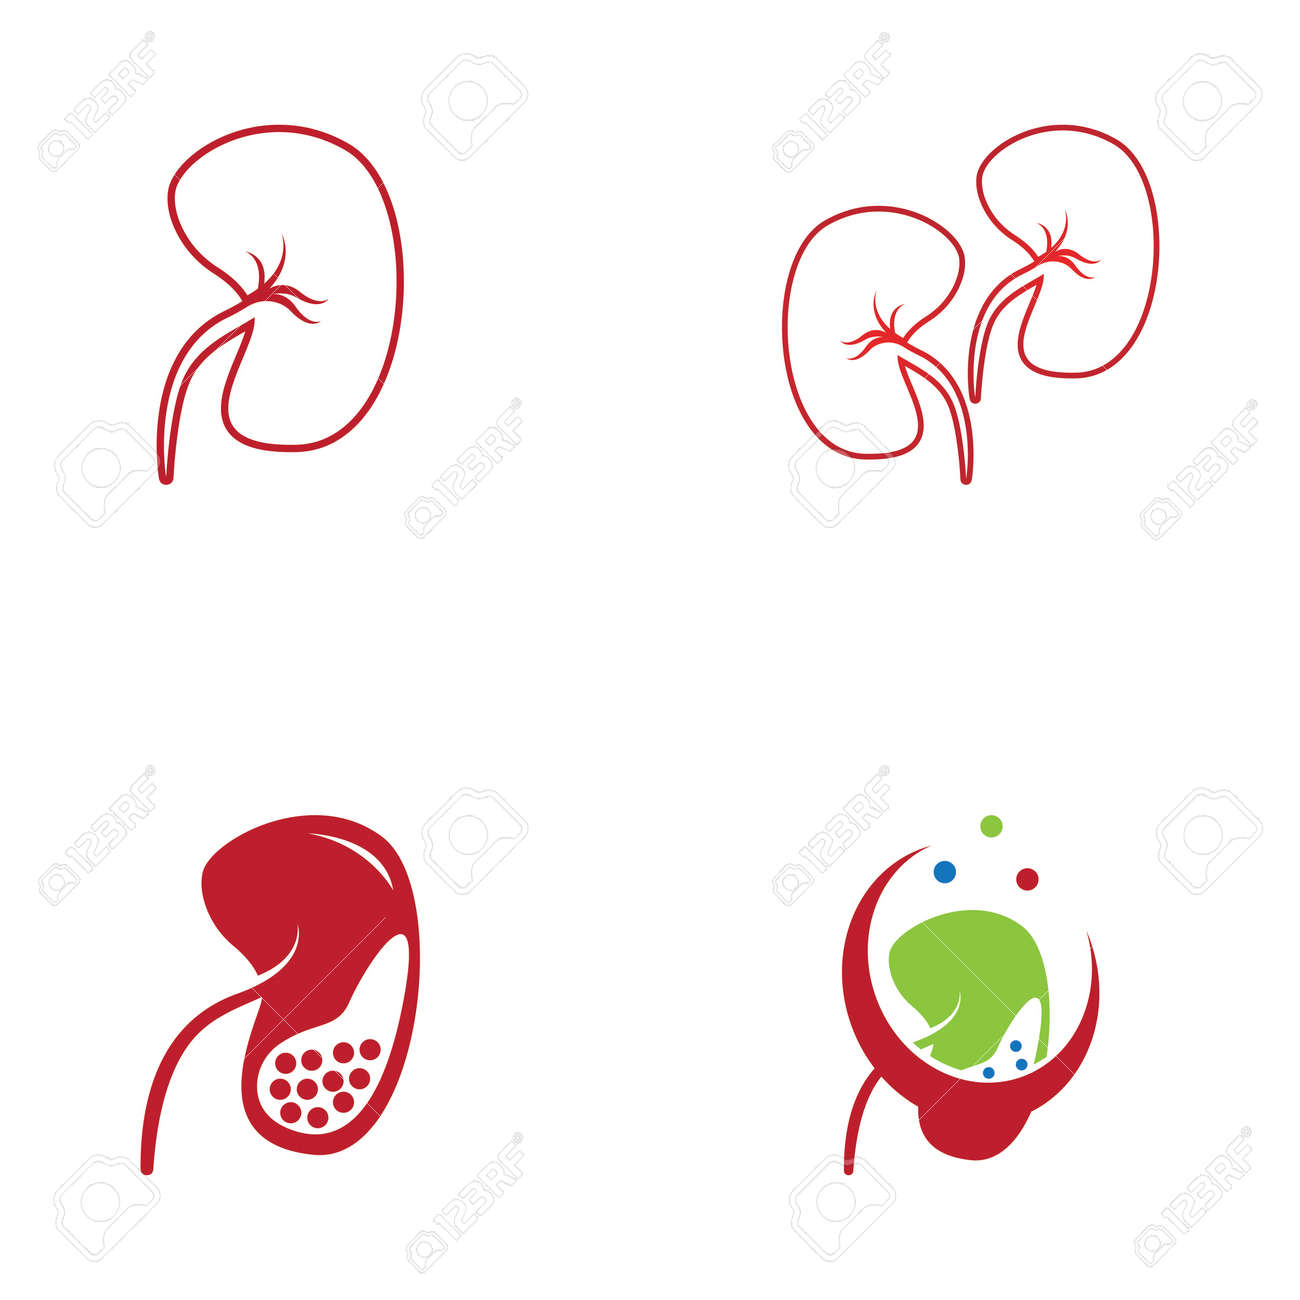 Kidney care icon and symbol vector illustration - 169760386